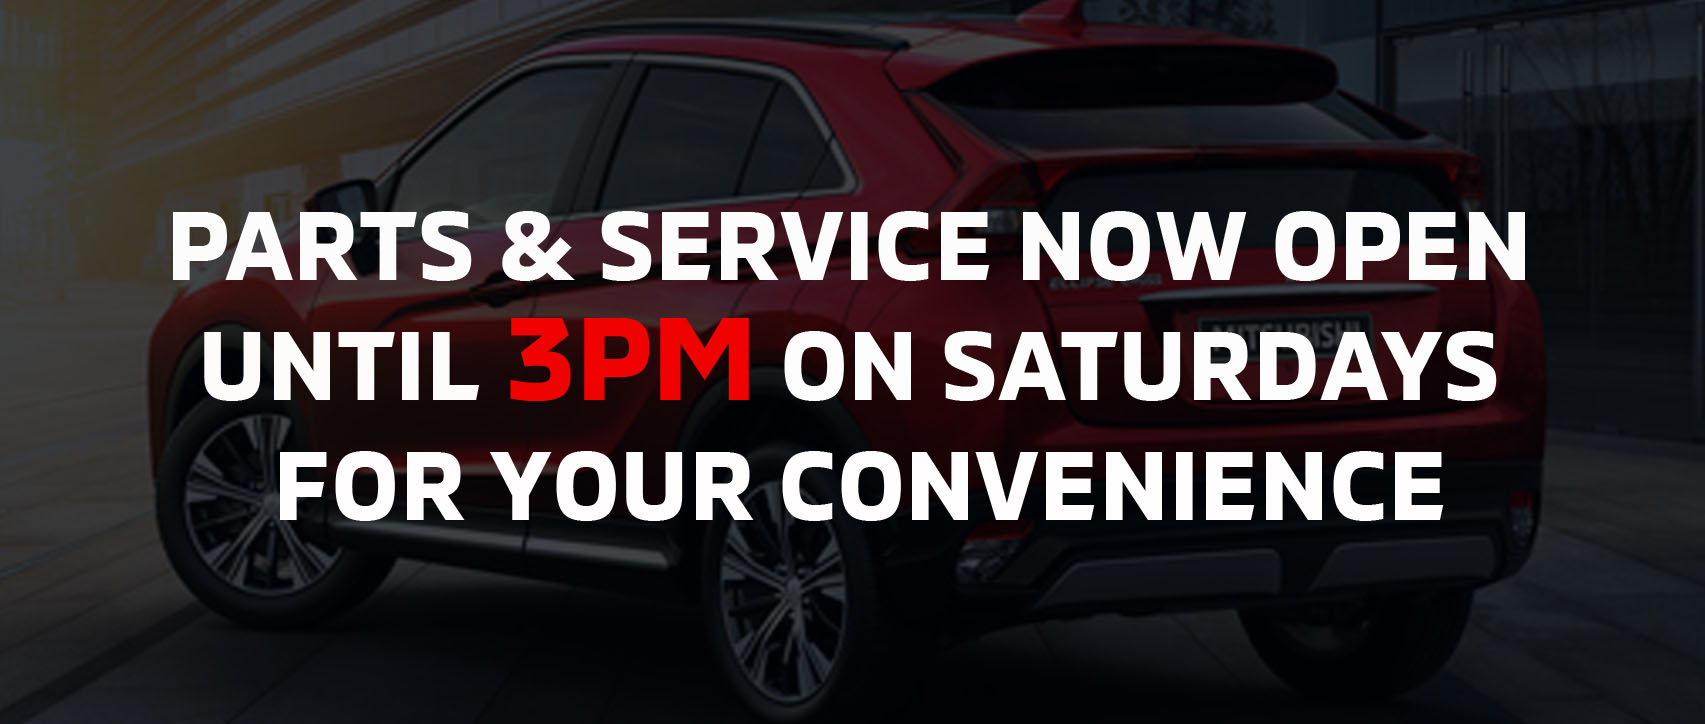 Parts and service hours, Ajax Mitsubishi